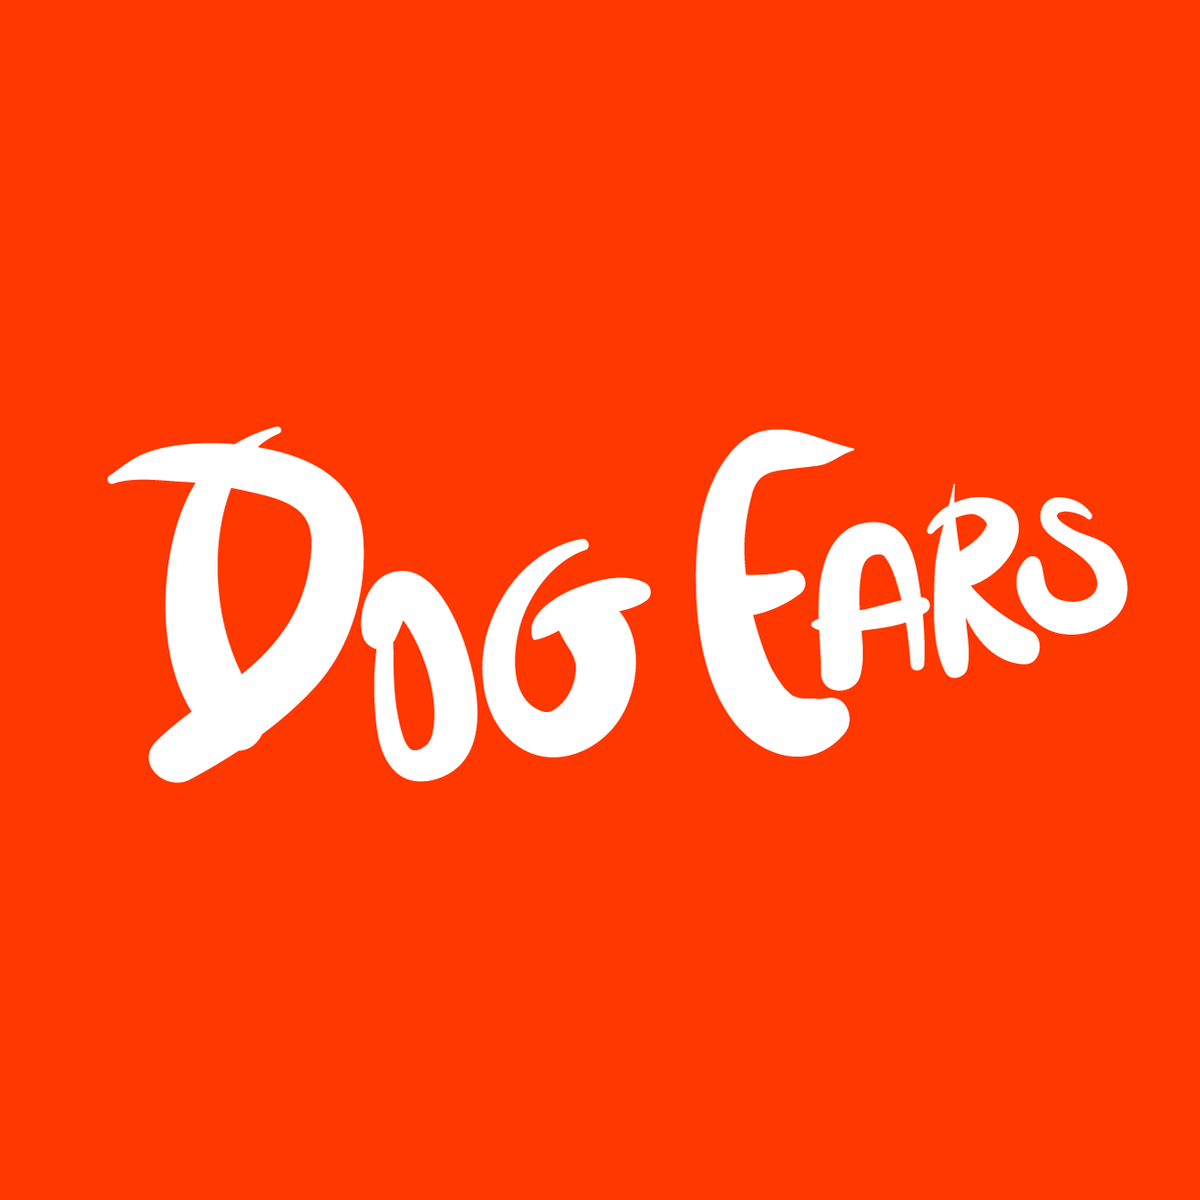 We still have loads of jobs going in @CheersDogEars. Come join us on our stunning new show with @CartoonSaloon😆 @ToonBoom @ToonBoom_UK_IRL #jobfairy #2danimation https://t.co/RFSKibWQXC